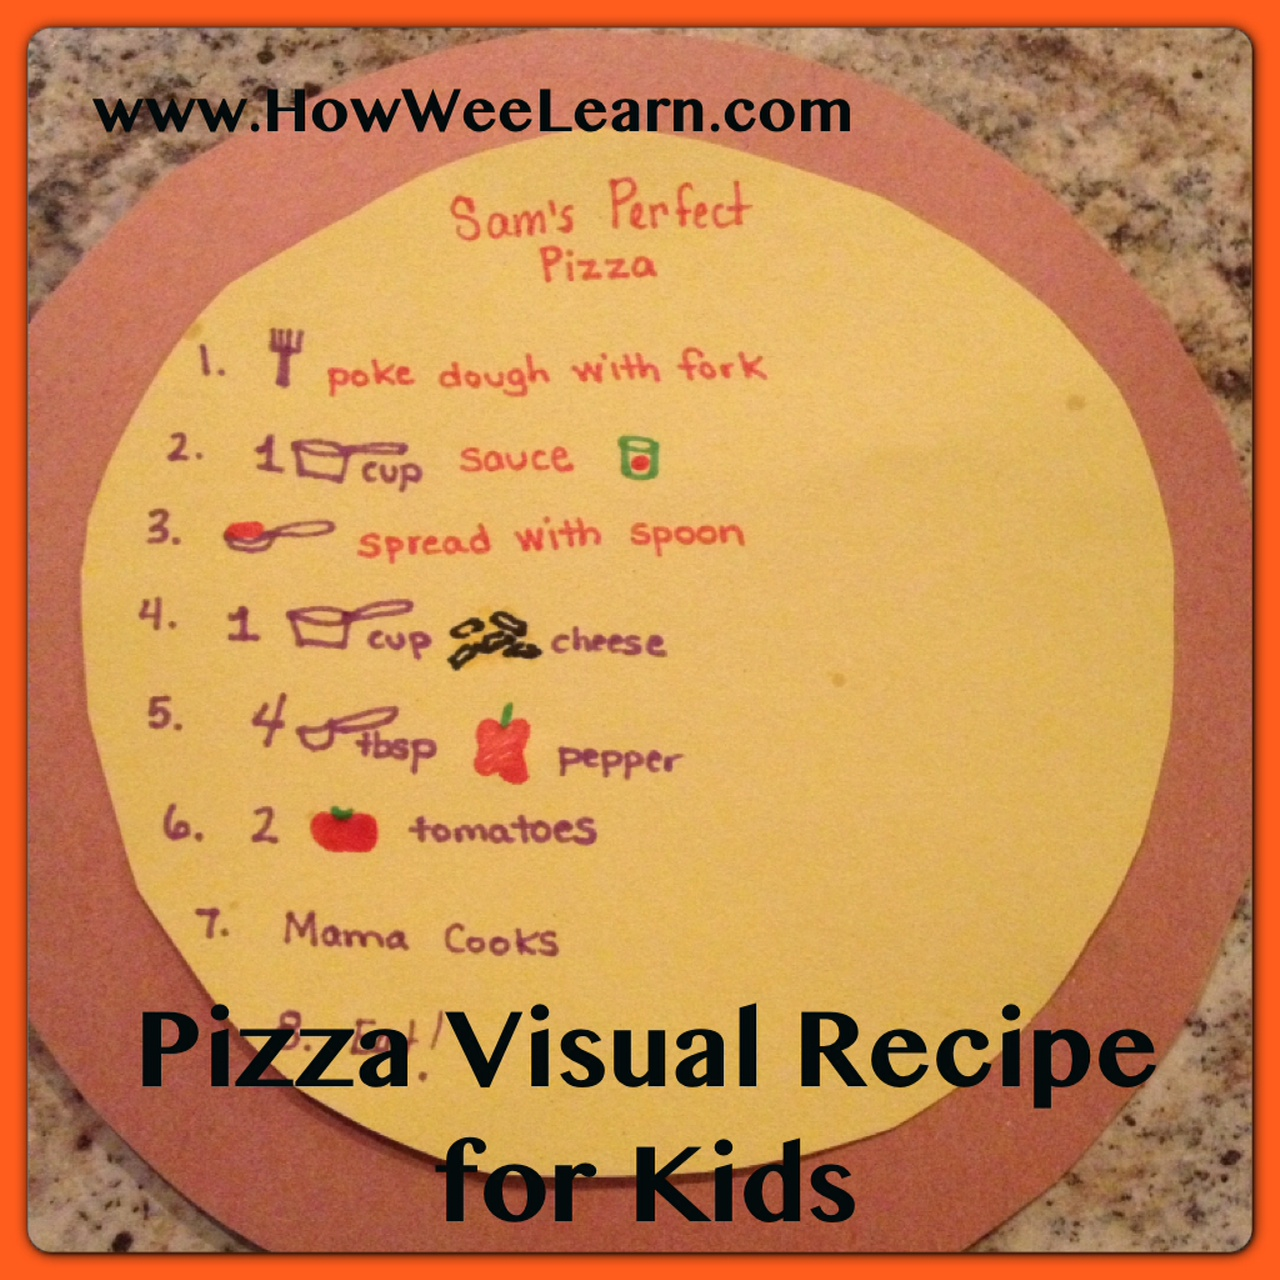 Tumblr notebook cover ideas little ideas notebook from the - Recipes For Kids Pizza How Wee Learn